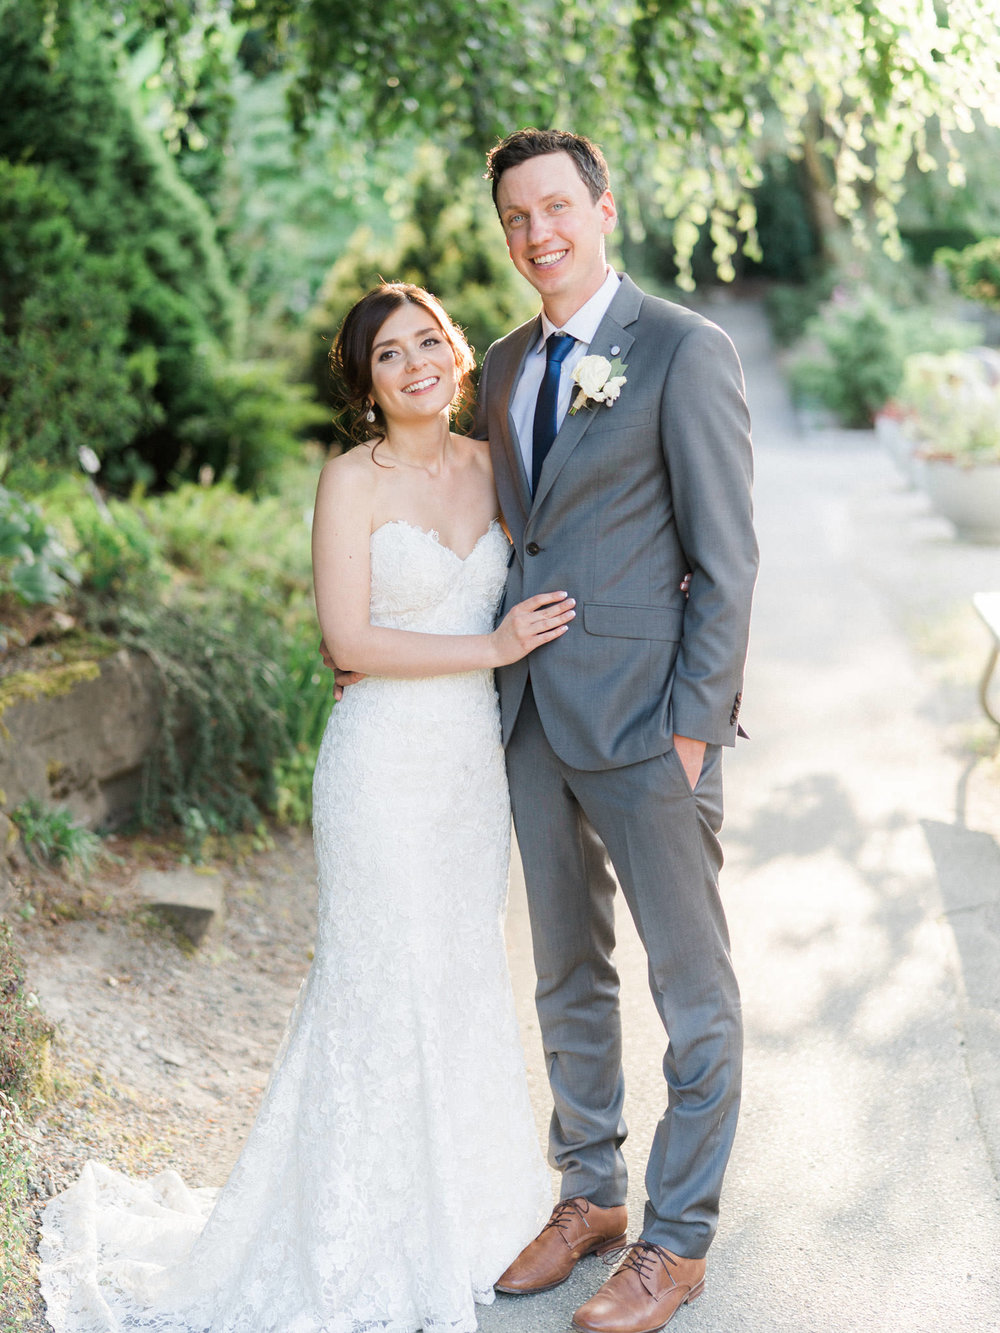 VanDusen Garden wedding